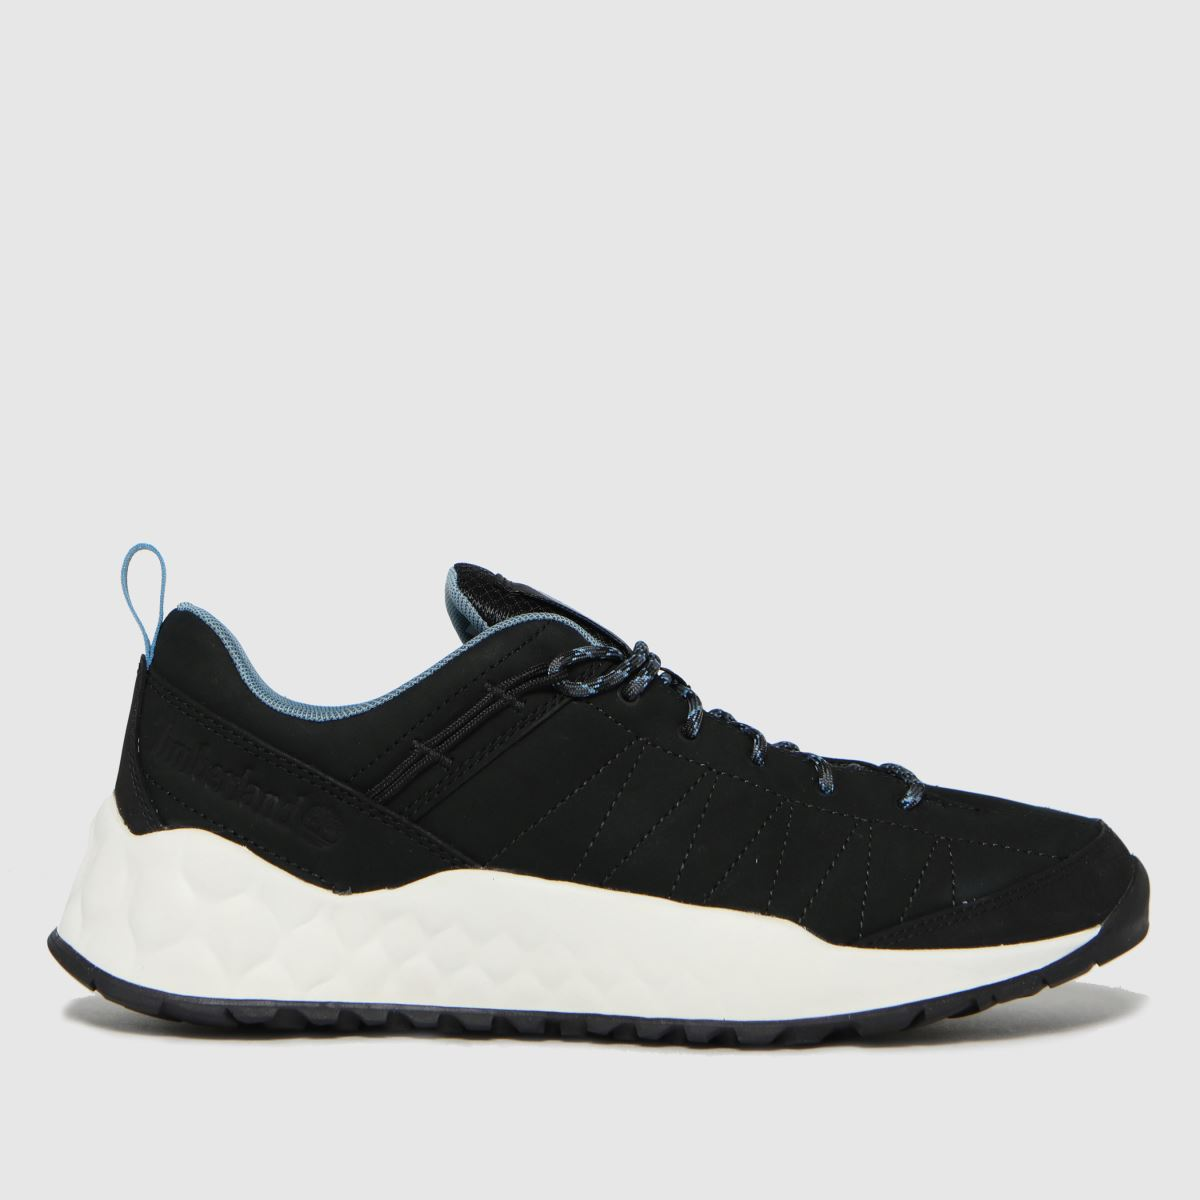 Timberland Black Solar Wave Low Leather Trainers